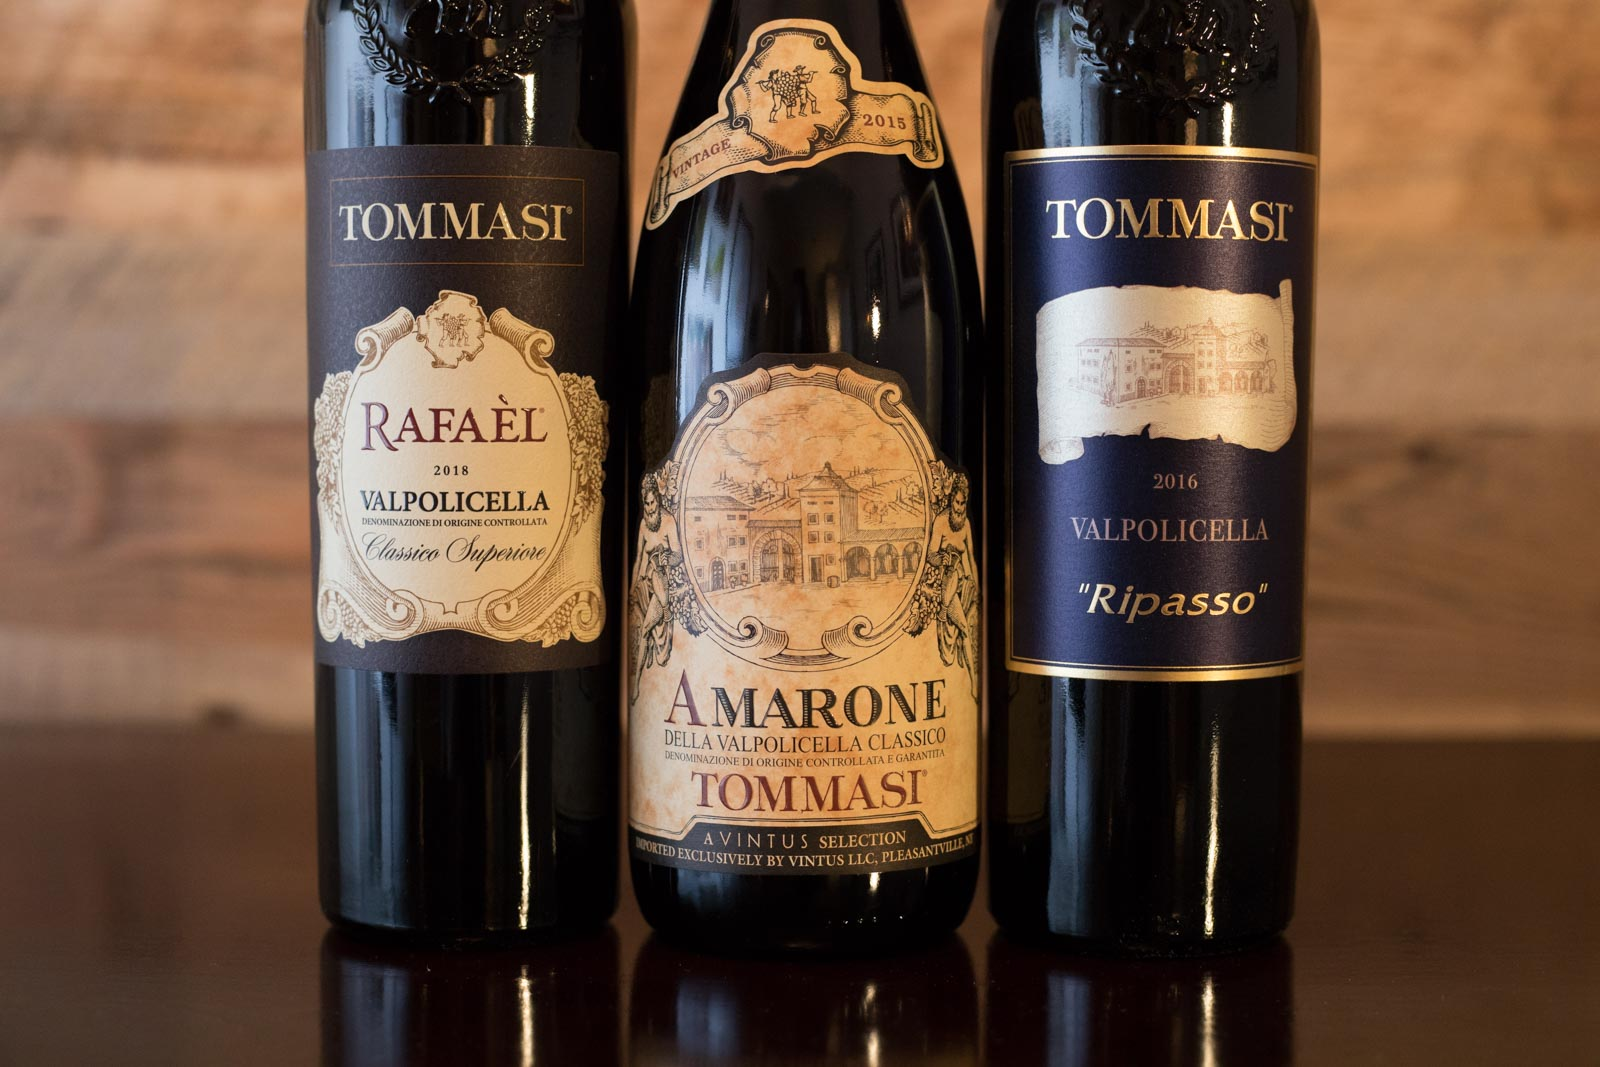 The Valpolicella wines of Tommasi. ©Kevin Day/Opening a Bottle